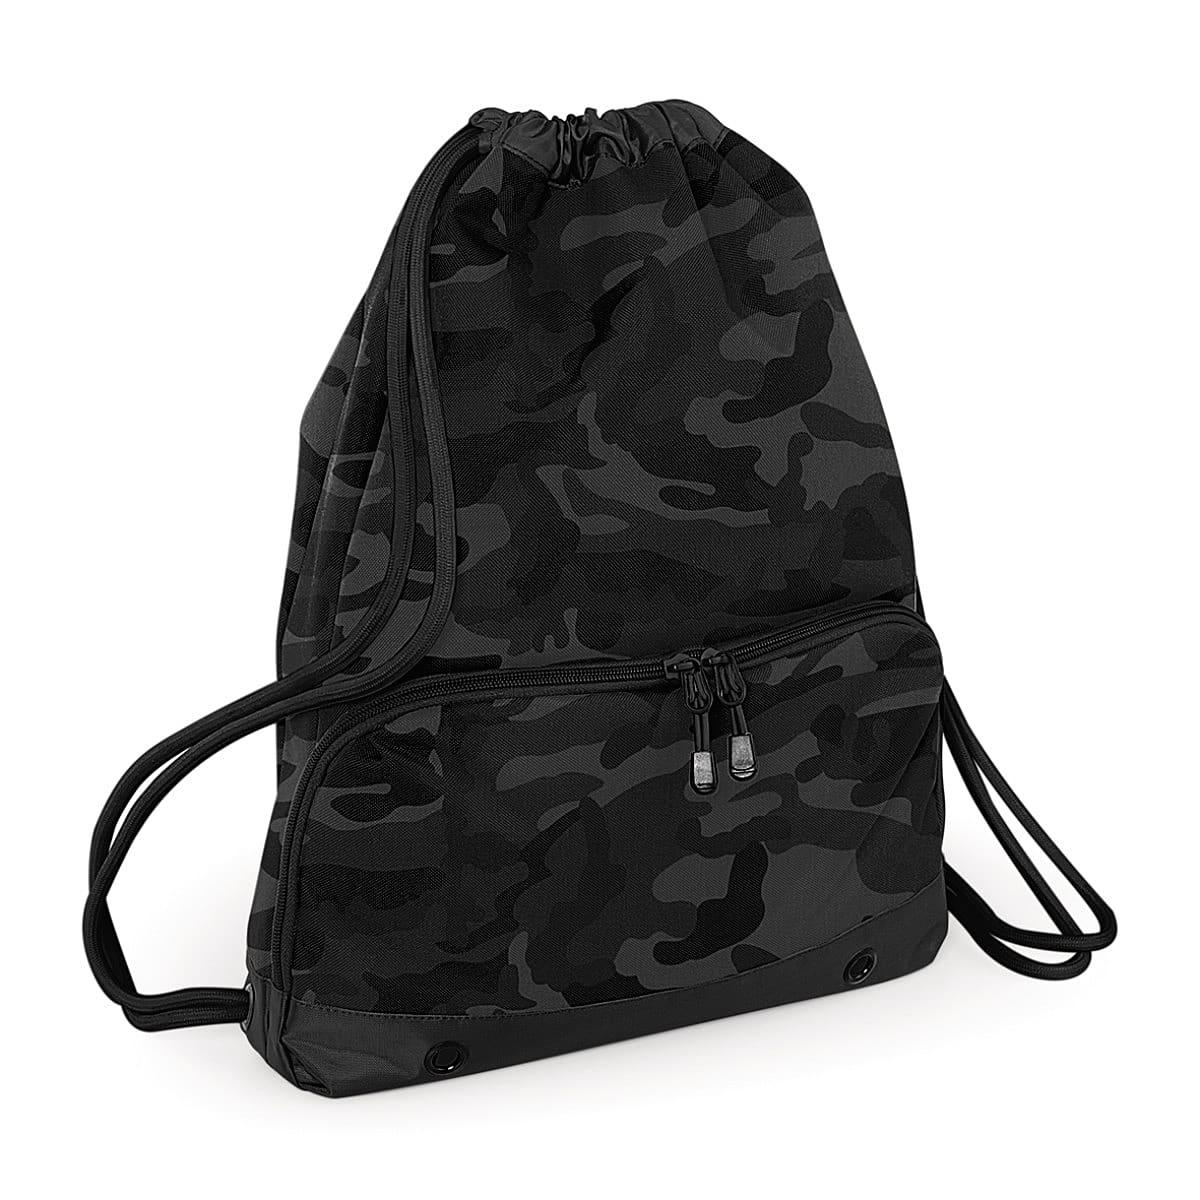 Bagbase Athleisure Gymsac in Midnight Camo (Product Code: BG542)